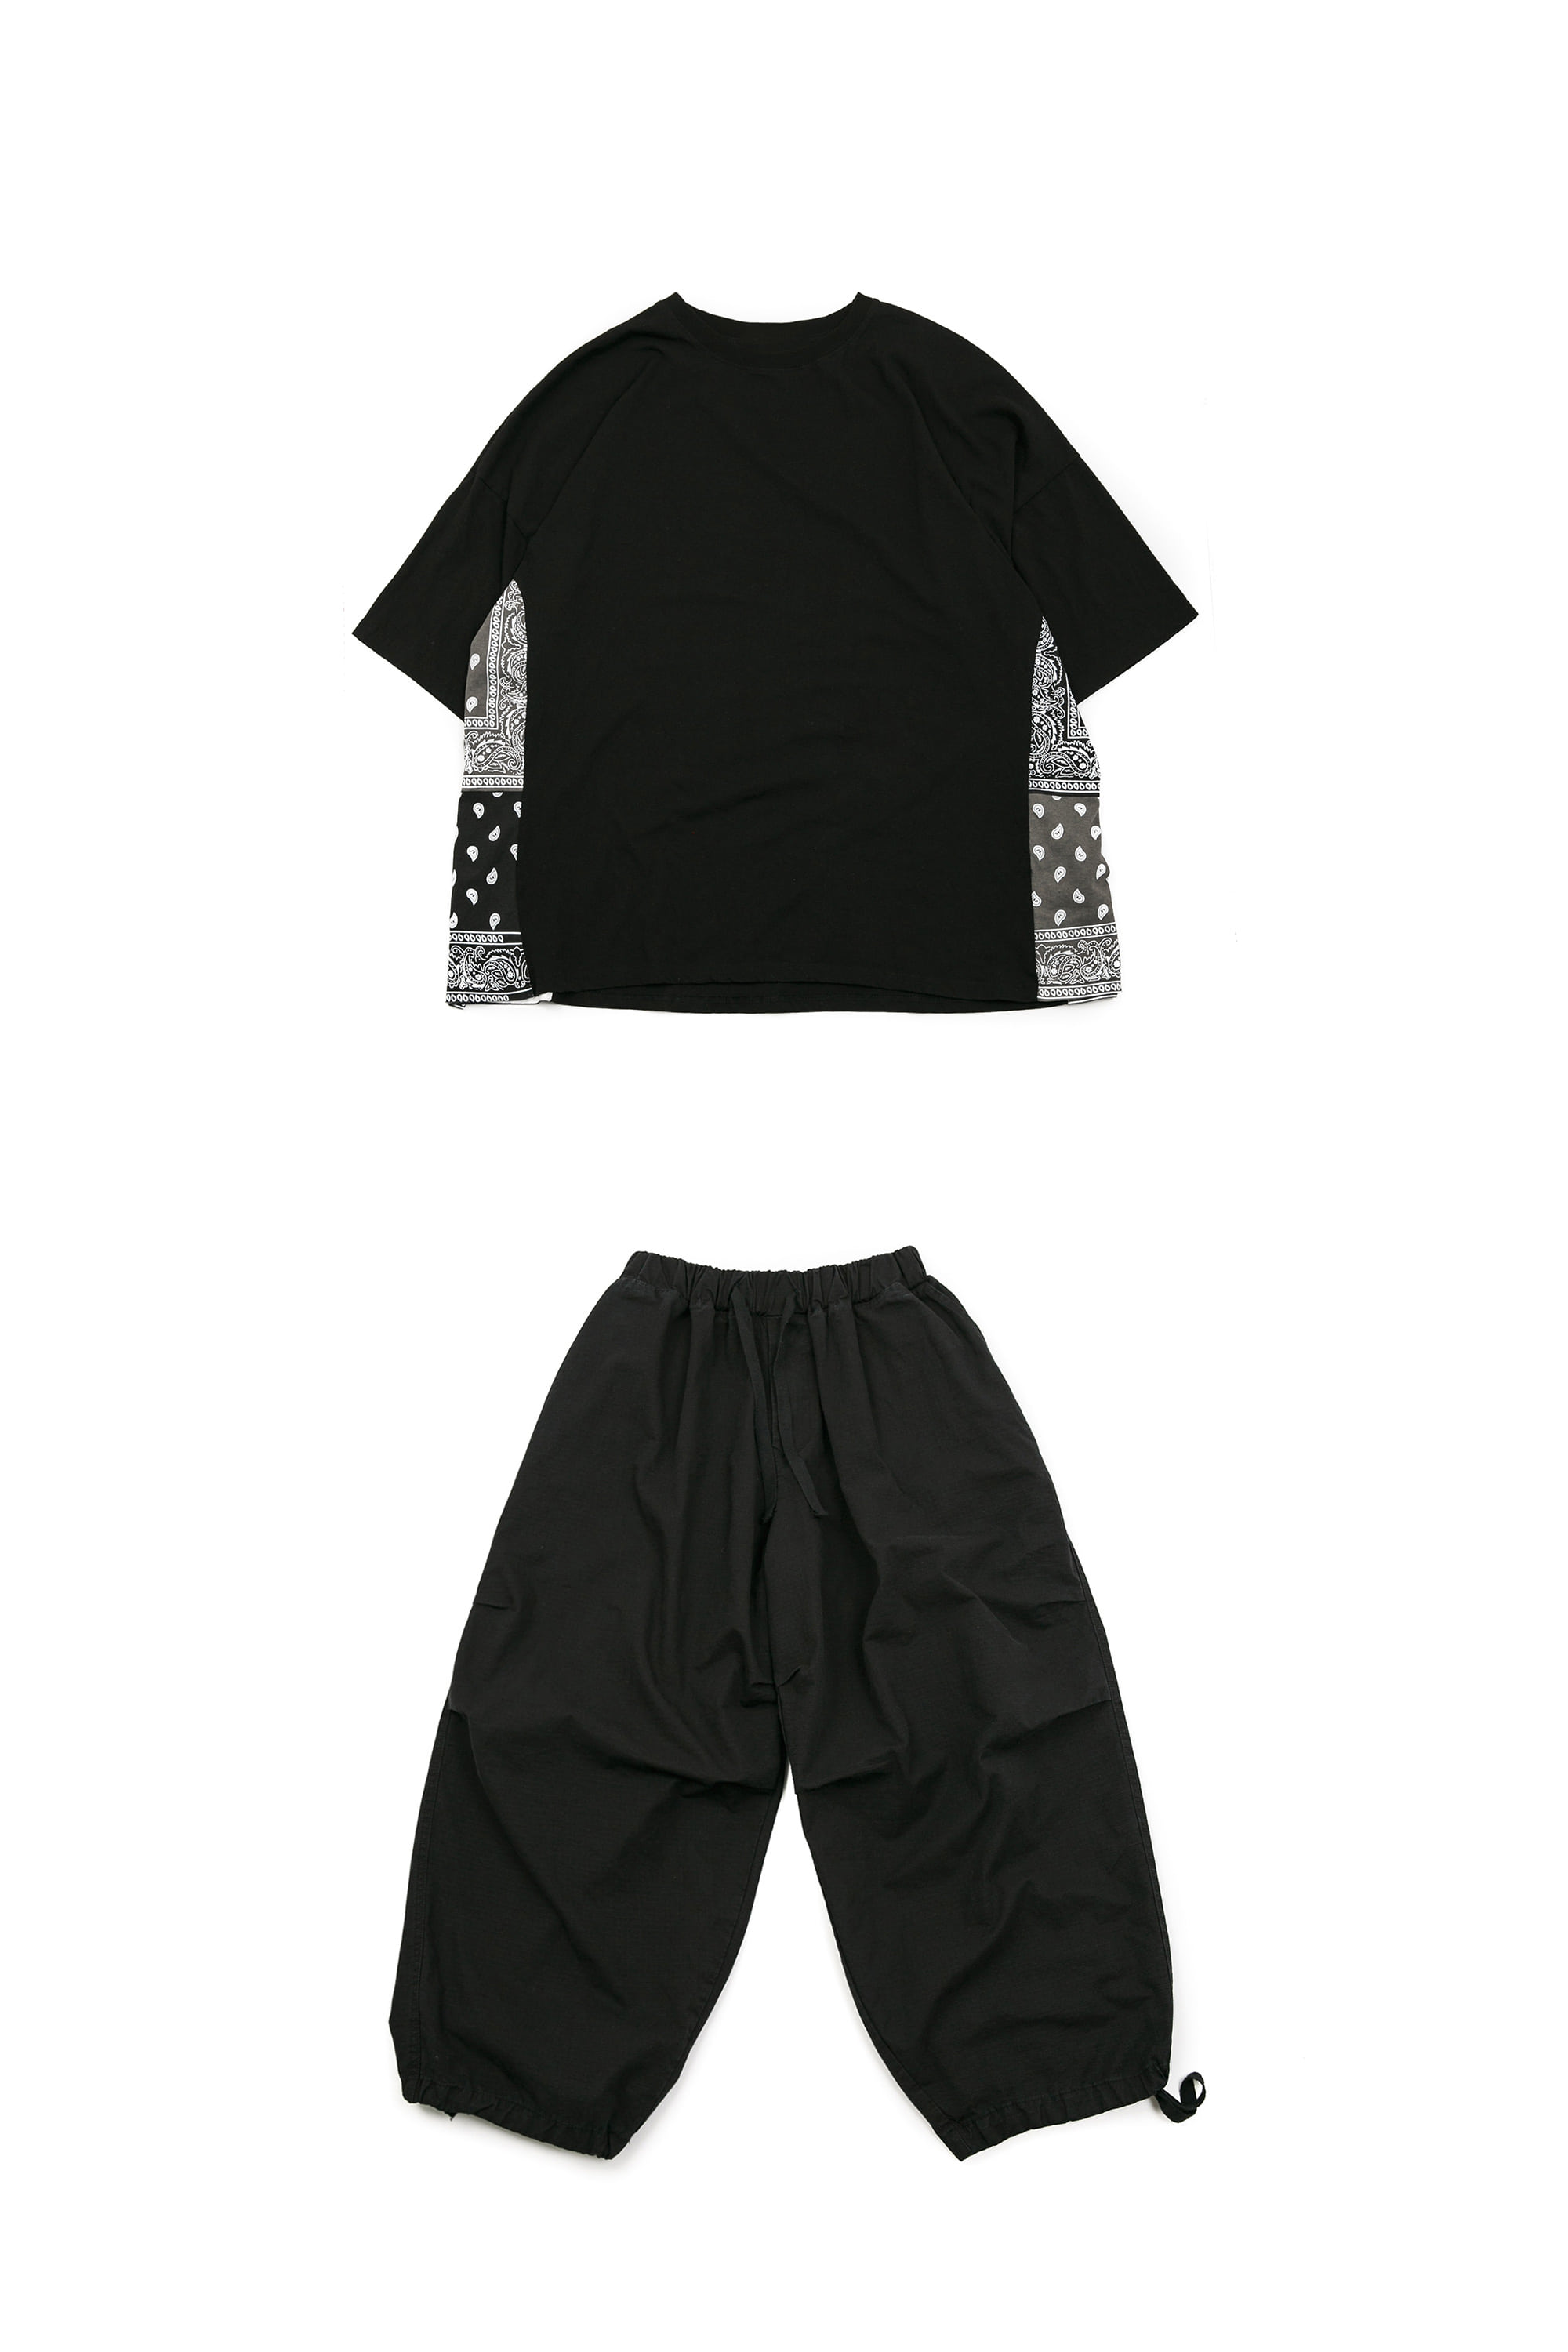 Side Paisely Half Tee - Black & Rib Army Balloon Pants - Black